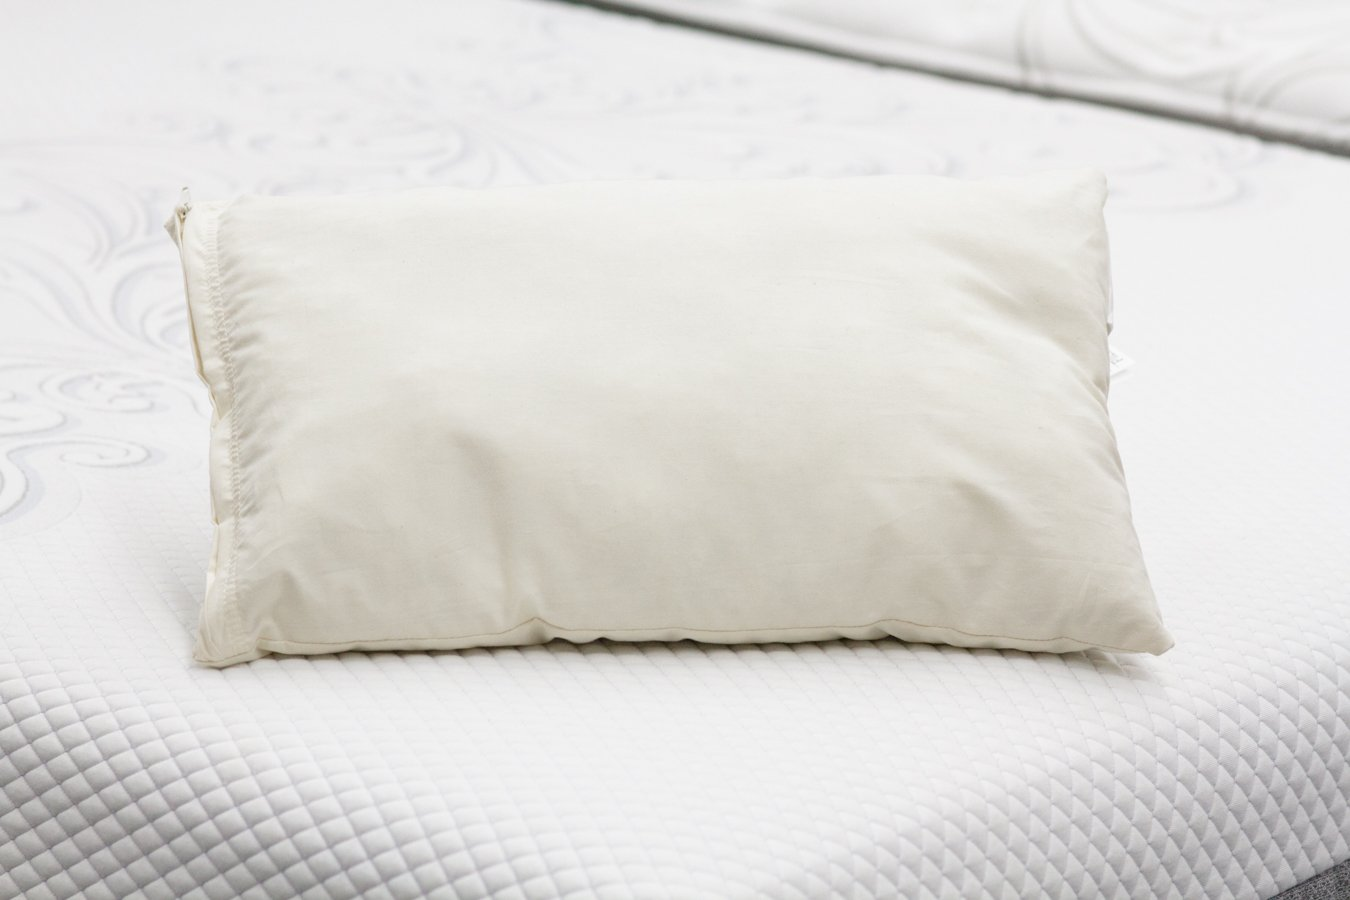 Wooliebees Soft Hypoallergenic Wool Pillows Covered in Soft 230 Thread Count Cotton. May Help Reduce Neck Pain Due to Its Adjustable Nature. Reduce Snoring and Sleep Comfortably on a Wooliebees Non-toxic and Chemical-free Pillow